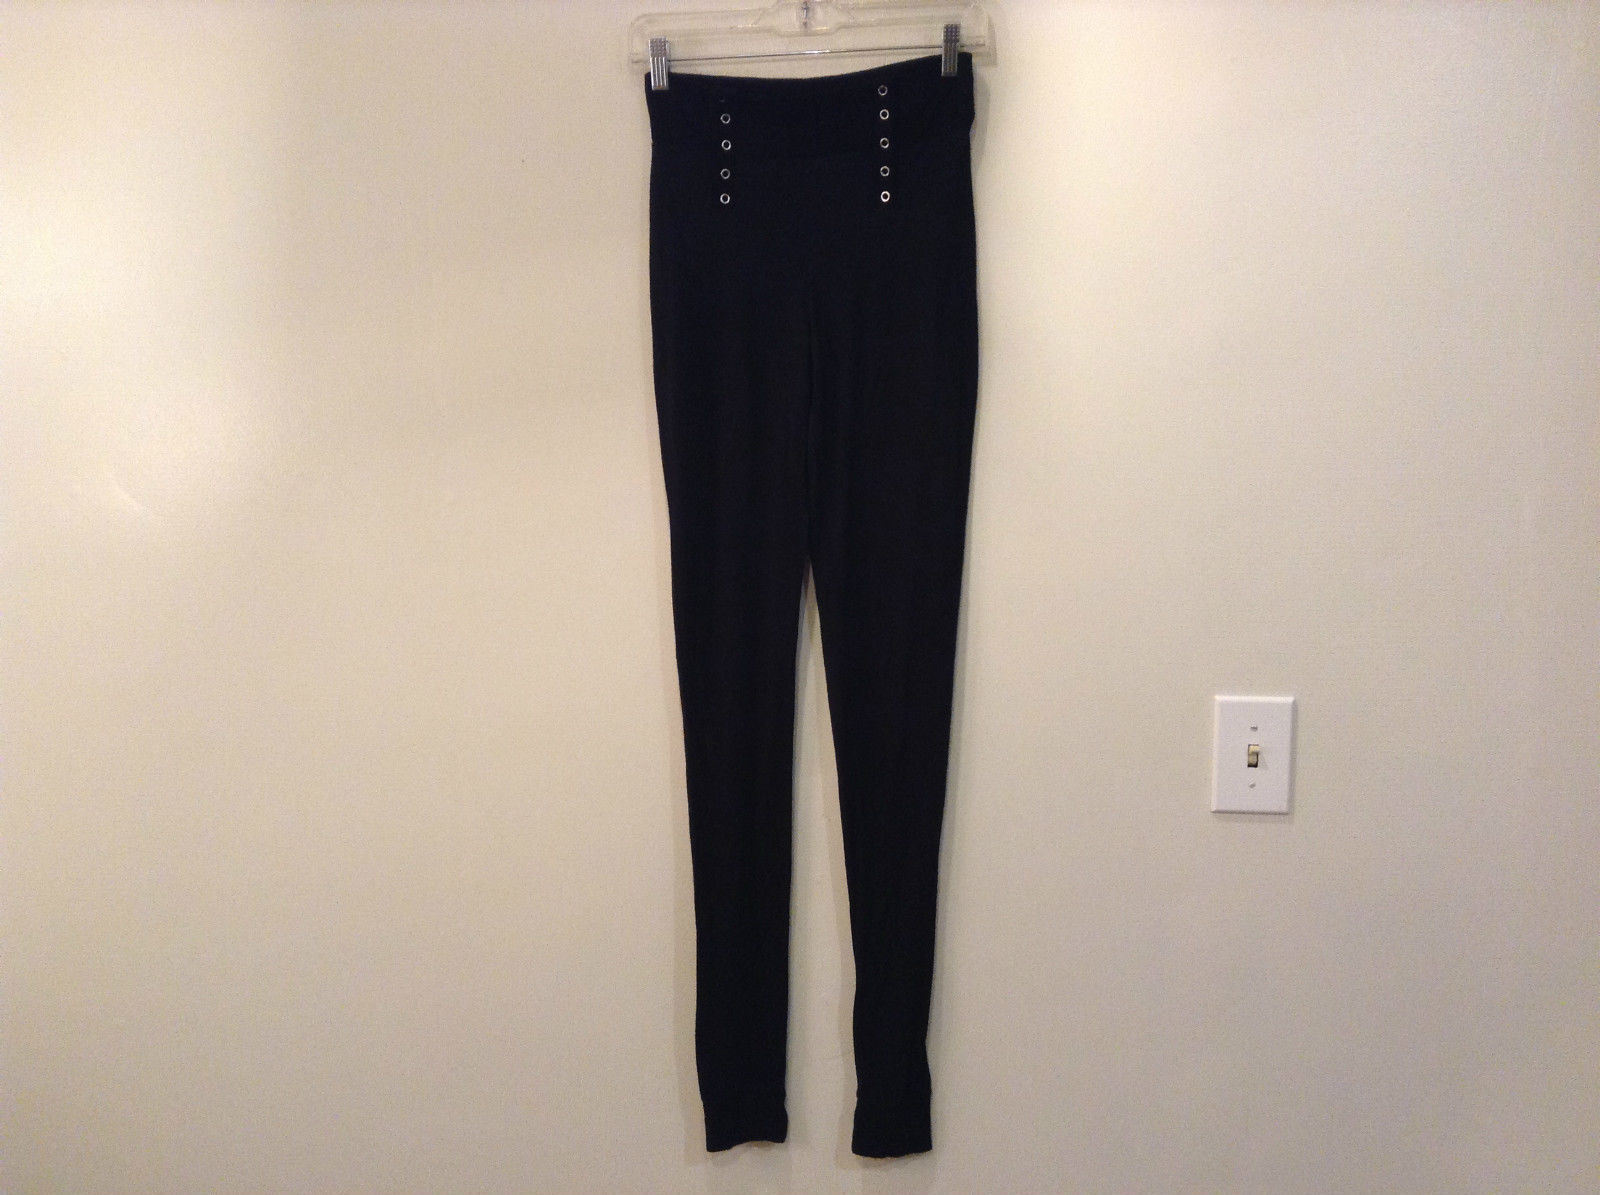 Black Stretchy Waist H and M Casual Pants Size 6 Decorative Buttons on Front